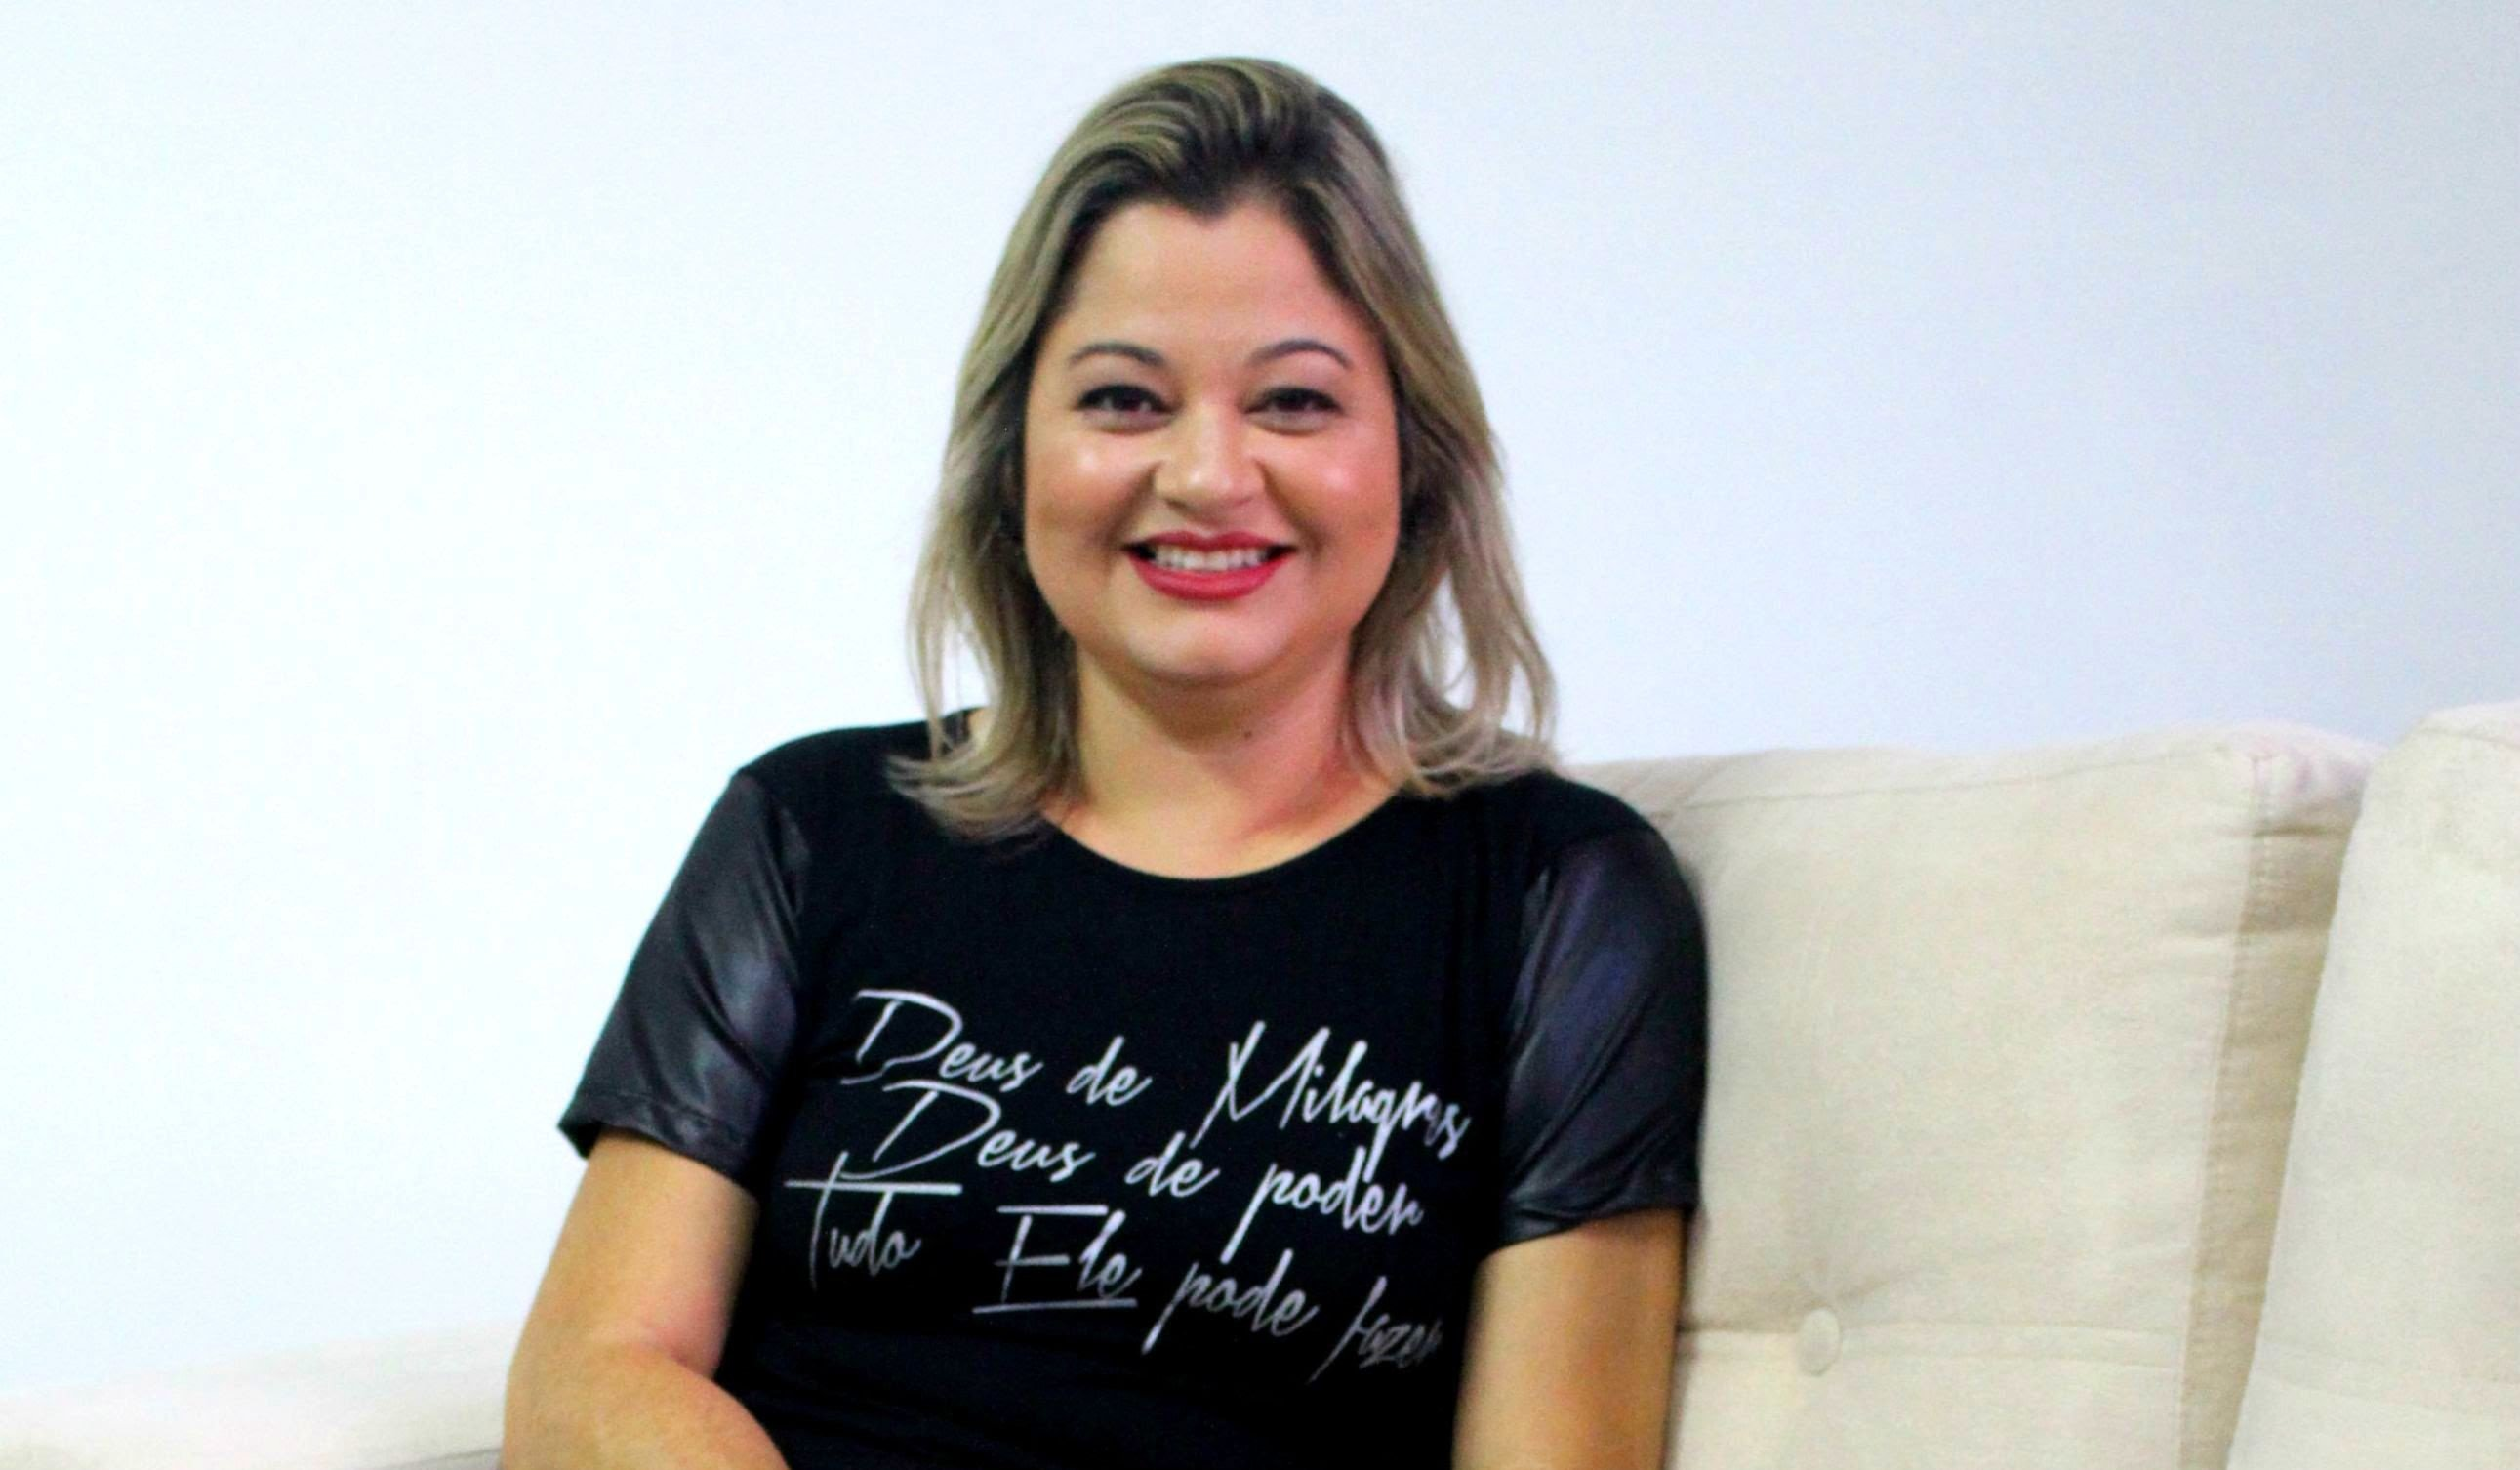 Leila Francieli inicia 2020 com o lançamento do single